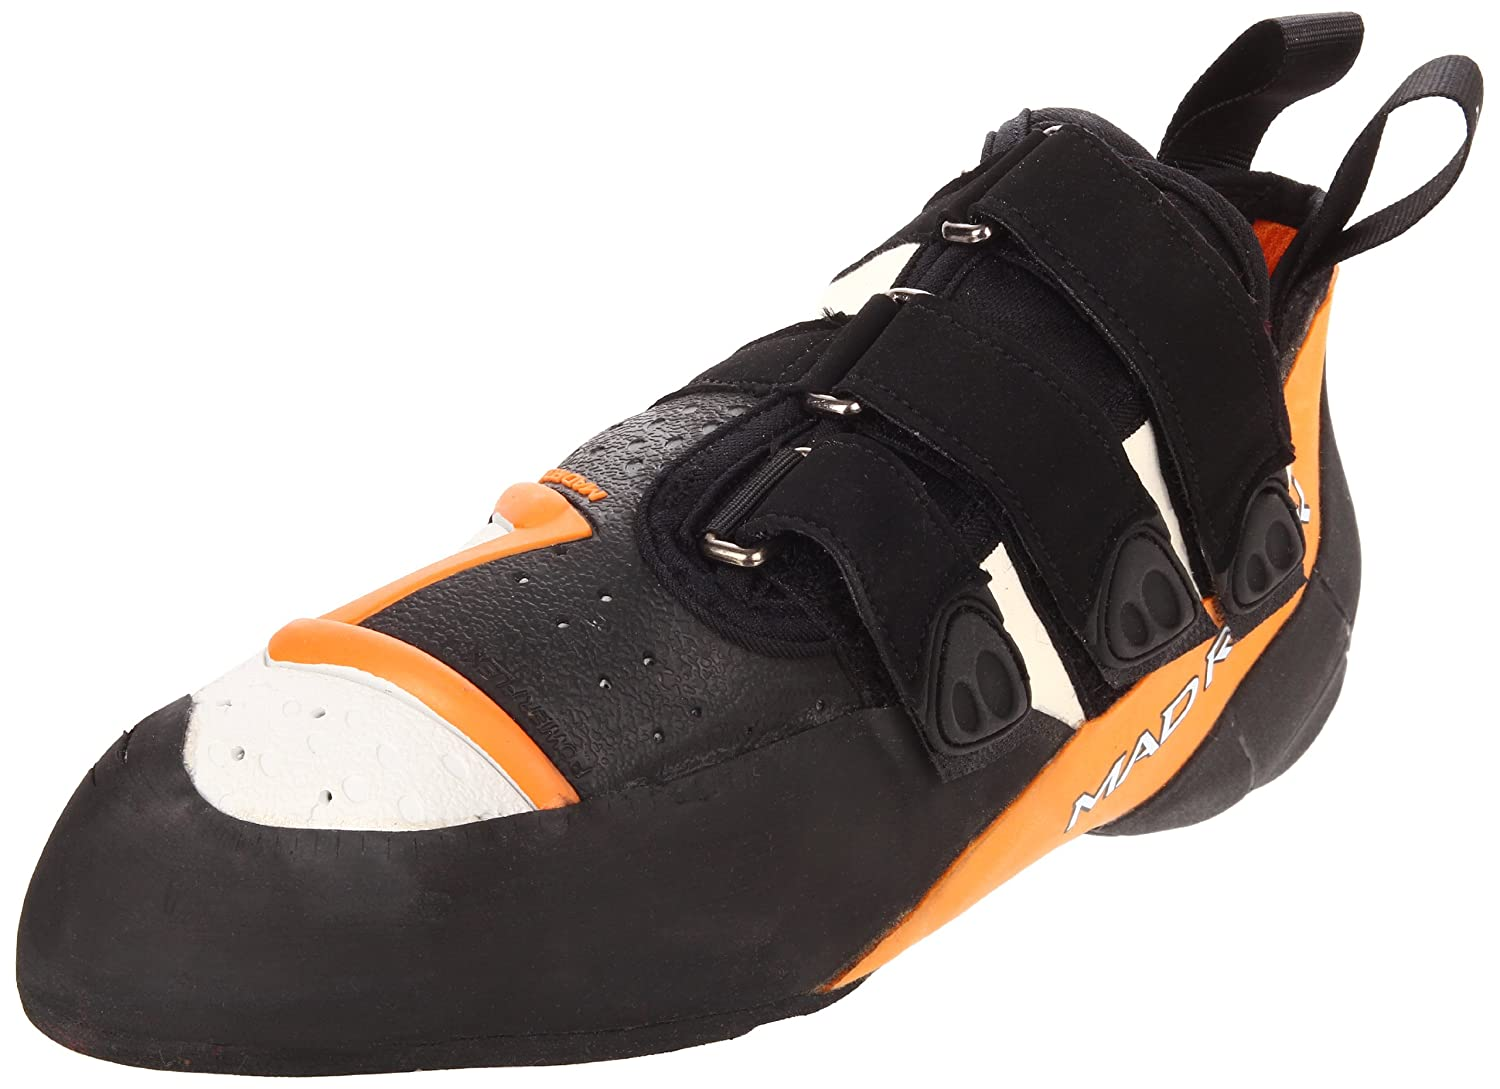 Mad Rock Demon 2.0 Climbing Shoe Orange/White/Black, 10.0 Demon 2.0-M